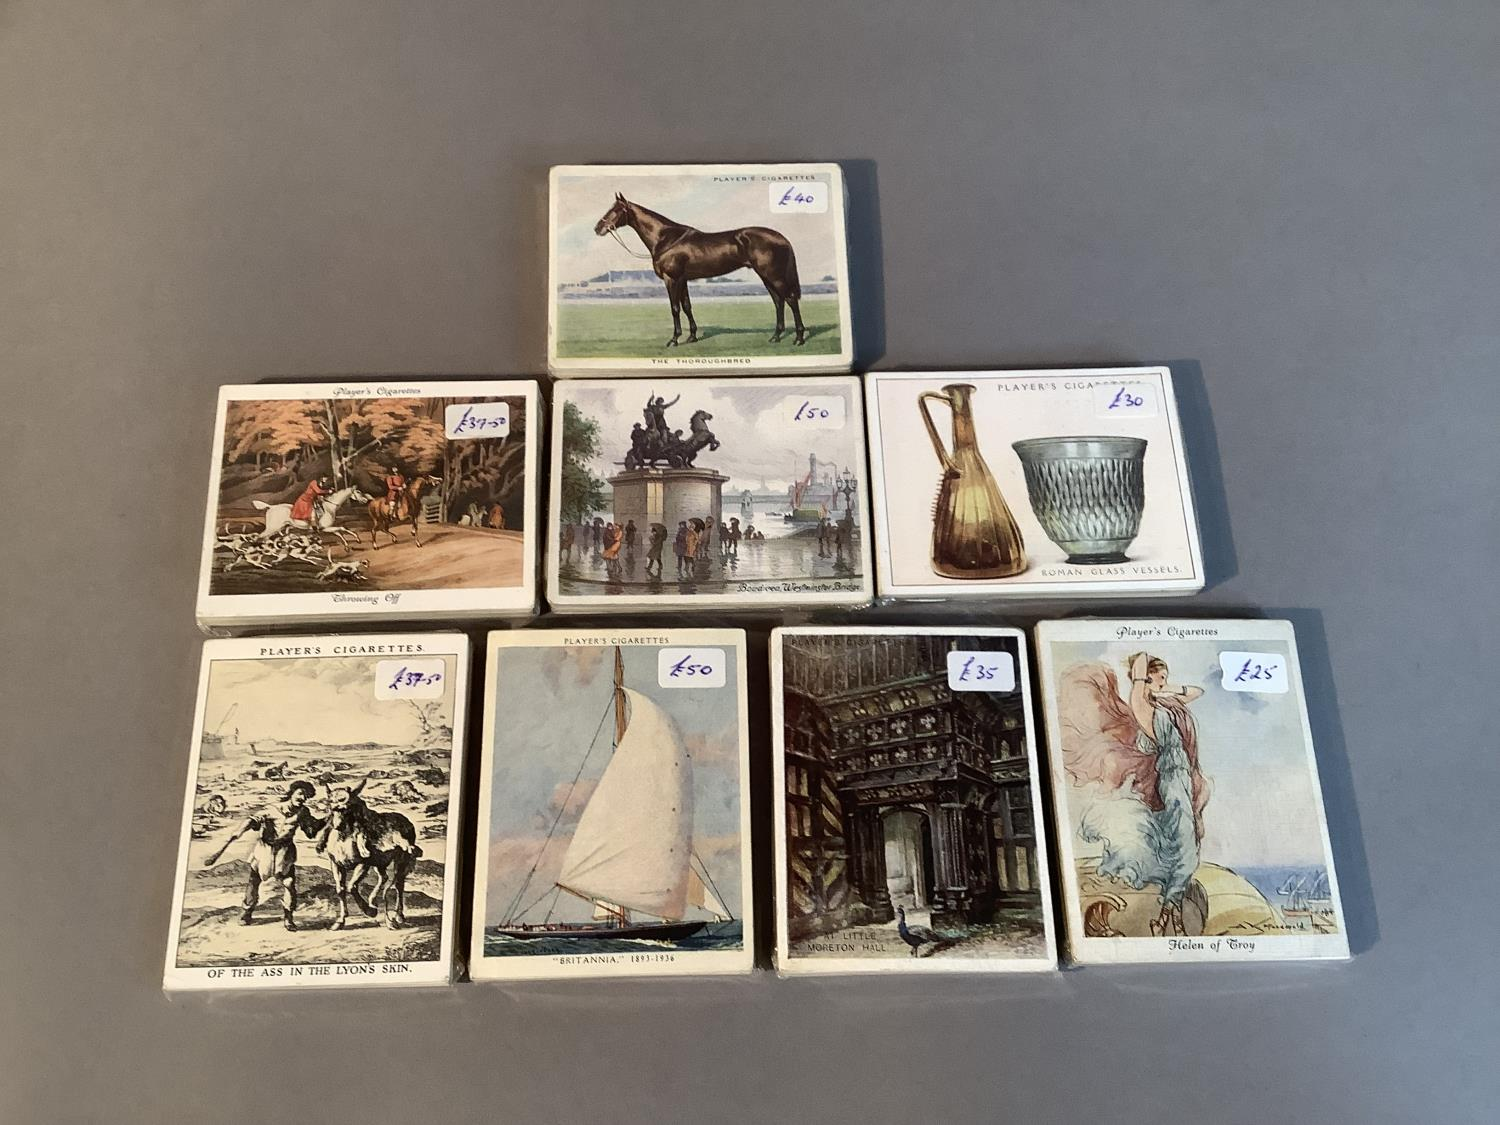 Cigarette cards, John Player & Sons, to include Picturesque London (25), Portals of the Past (25), - Image 3 of 3